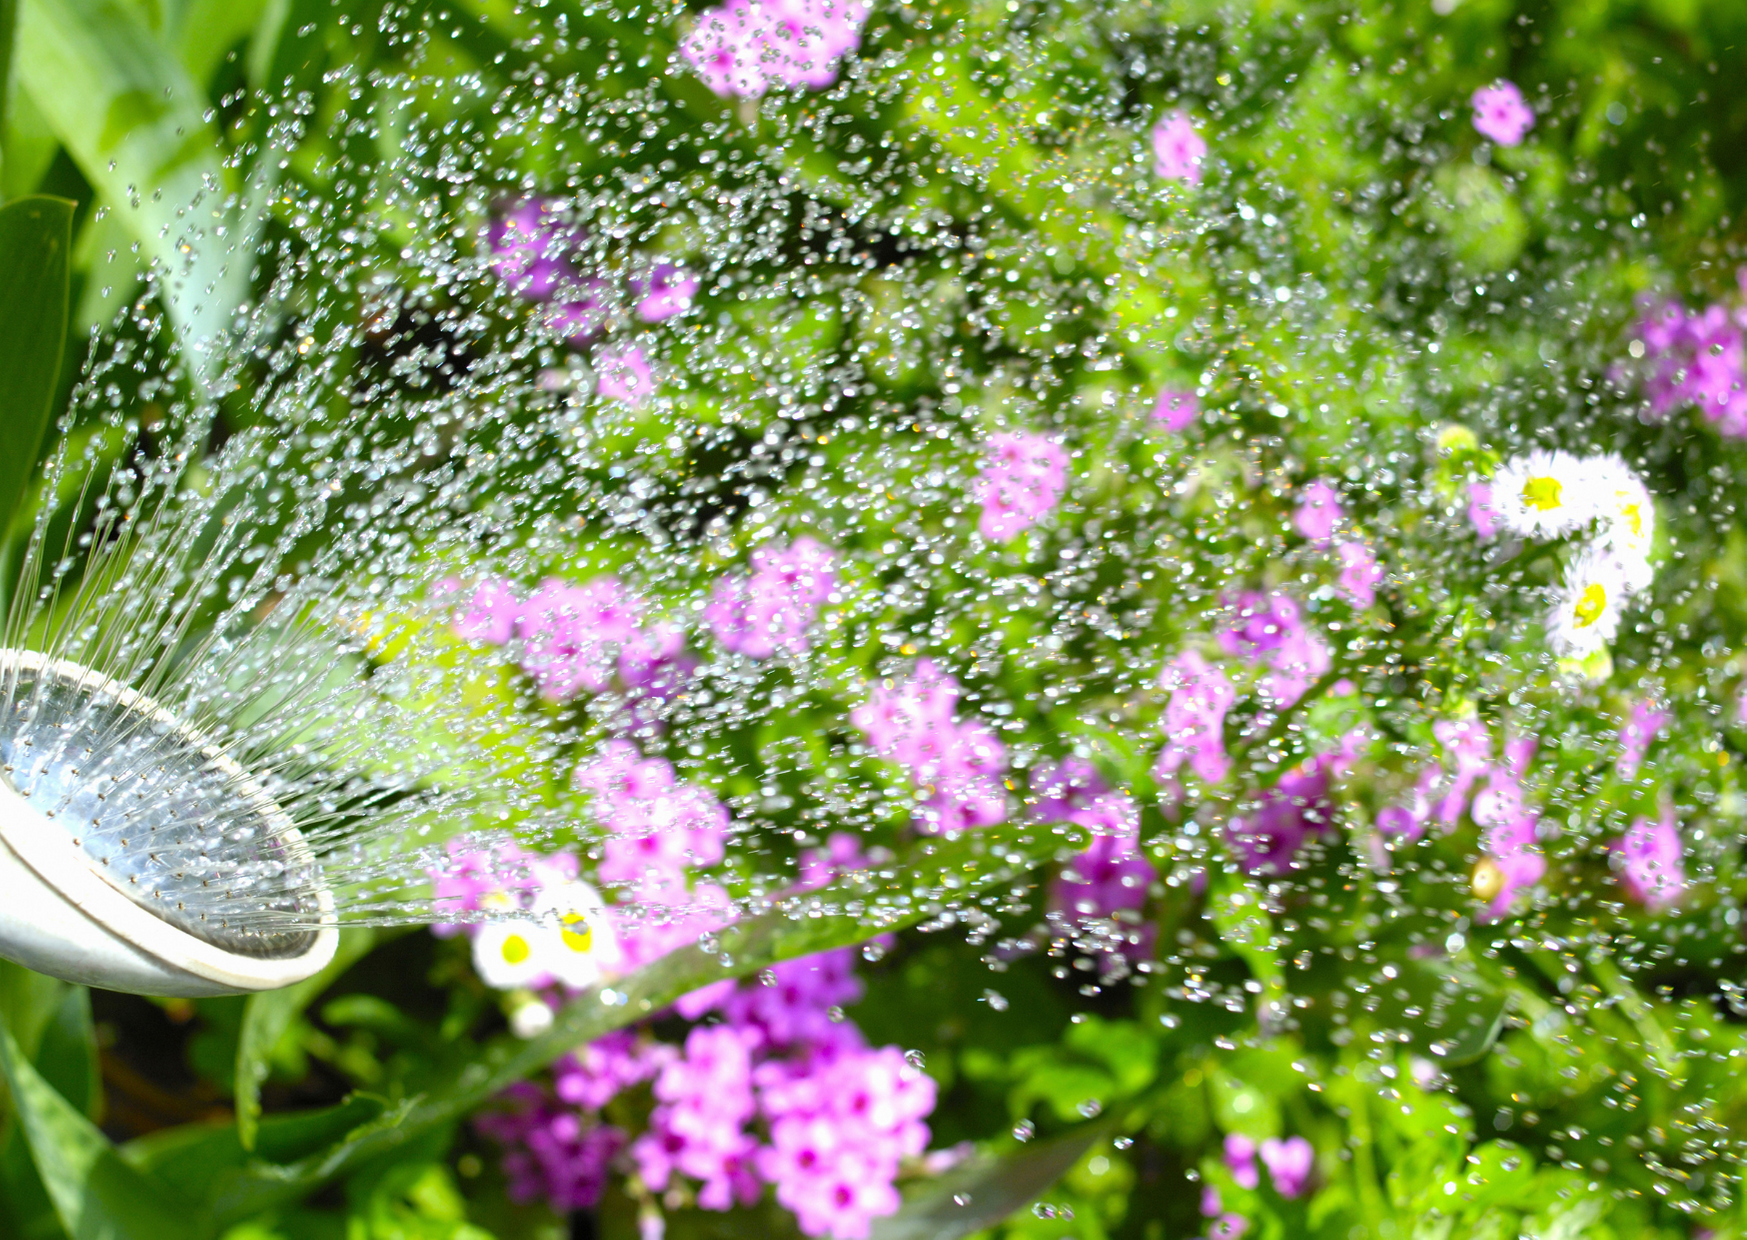 watering the plants